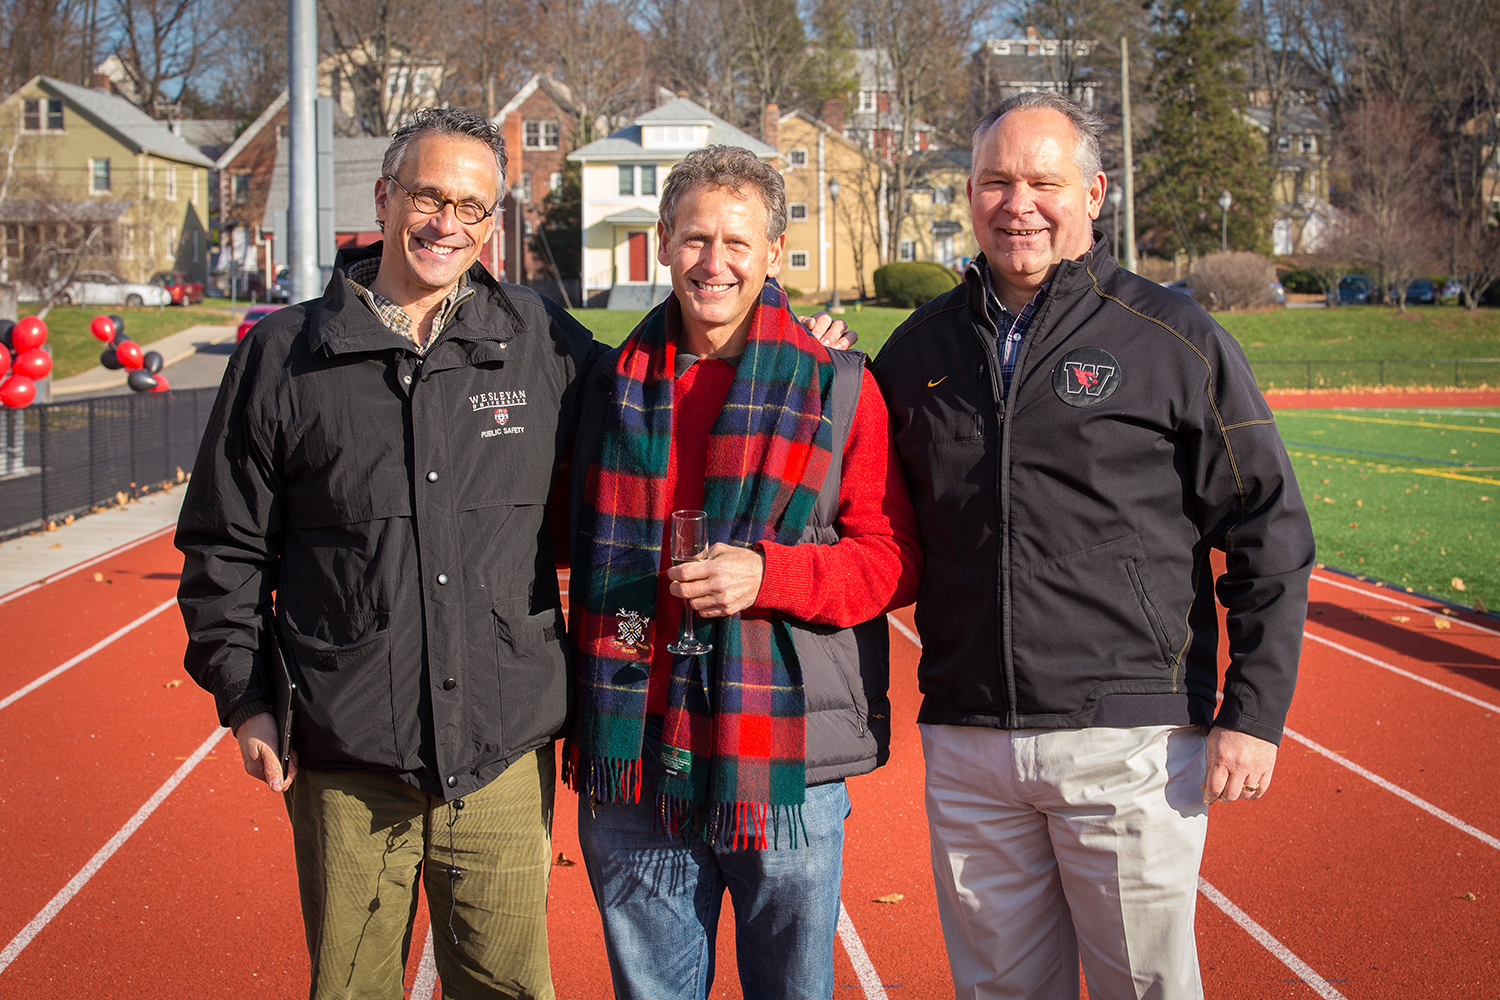 Jim Citrin P'12, P'14, in center, spoke on behalf of the Citrin family with President Michael Roth, at left, and Athletics Director Mike Whalen '83, at right. Jim Citrin's son, Teddy Citrin '12, was a high-scoring, four-year letterman in men's lacrosse, racking up 76 goals and 13 assists for 89 scoring points while helping the Cardinals post a record of 42-23 from 2009-12. His other son, Oliver Citrin '14, was a outstanding fan and men's lacrosse team photographer during his Wesleyan years.